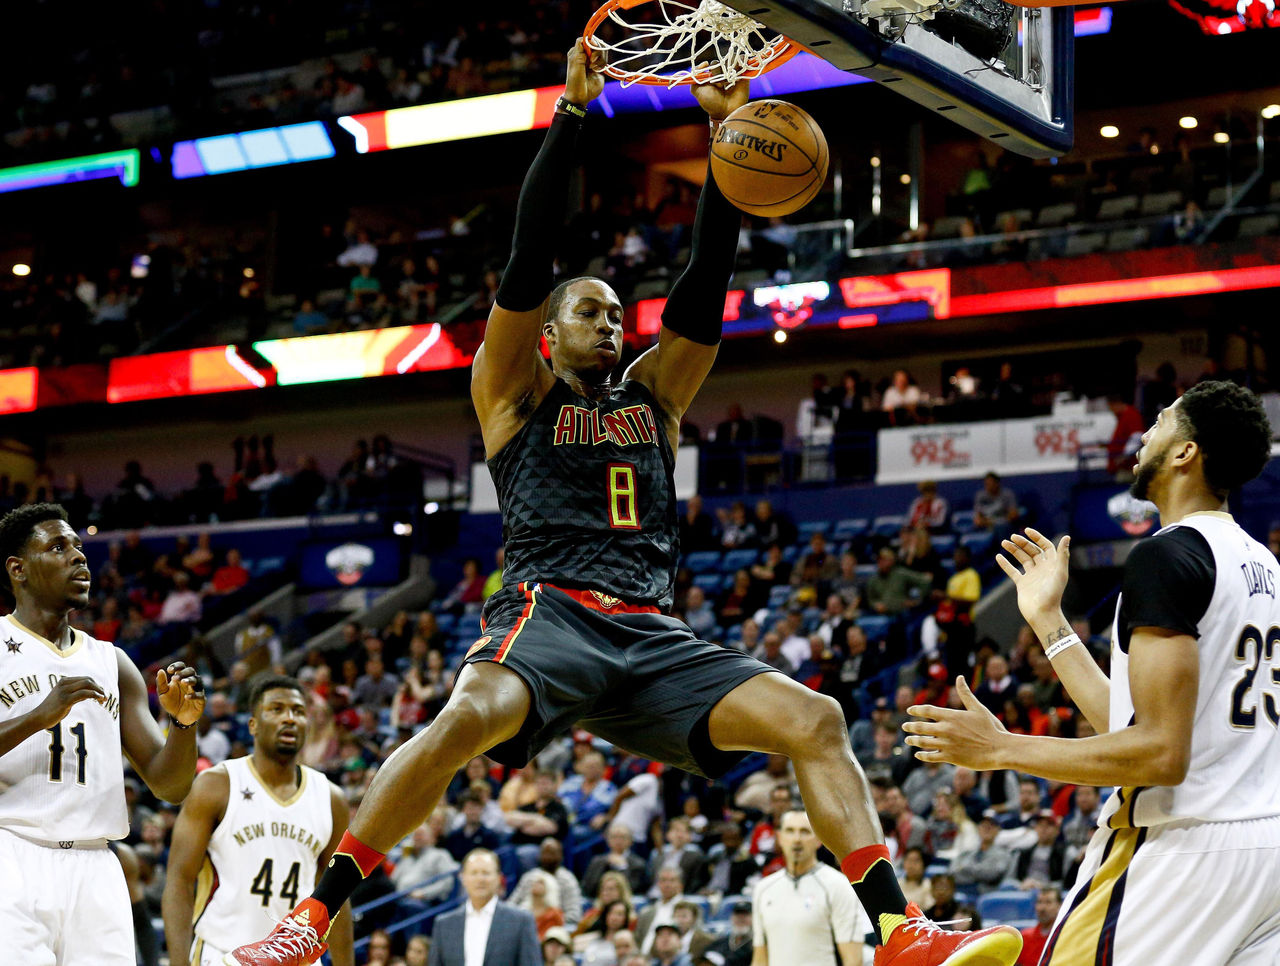 Cropped_2017-01-06t035647z_671959470_nocid_rtrmadp_3_nba-atlanta-hawks-at-new-orleans-pelicans